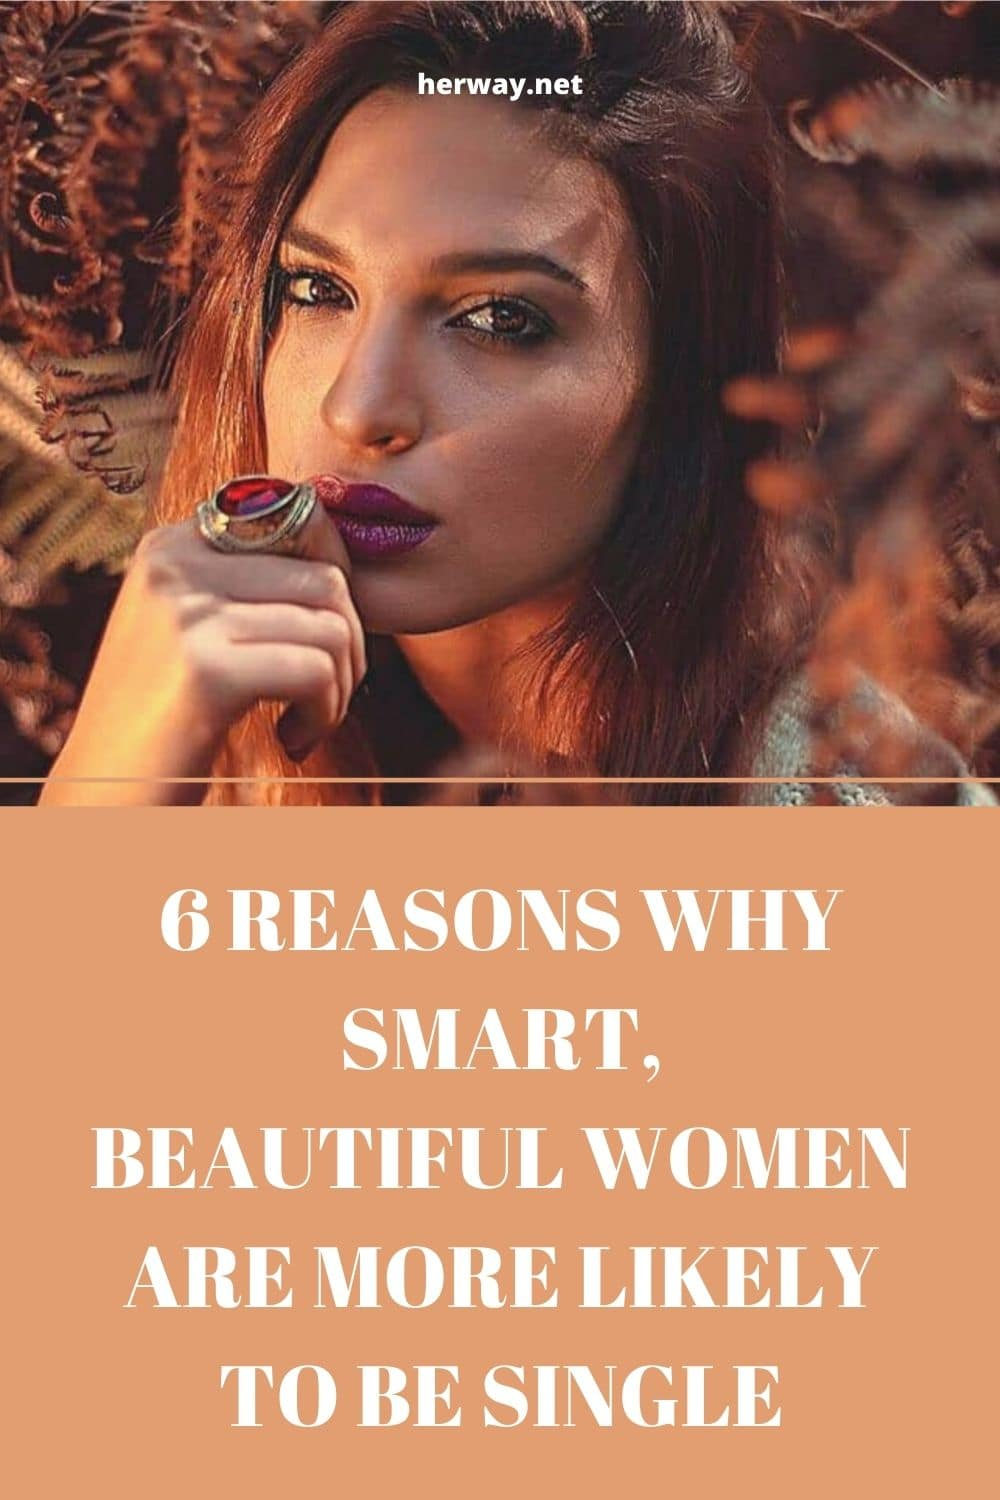 6 Reasons Why Smart, Beautiful Women Are More Likely To Be Single